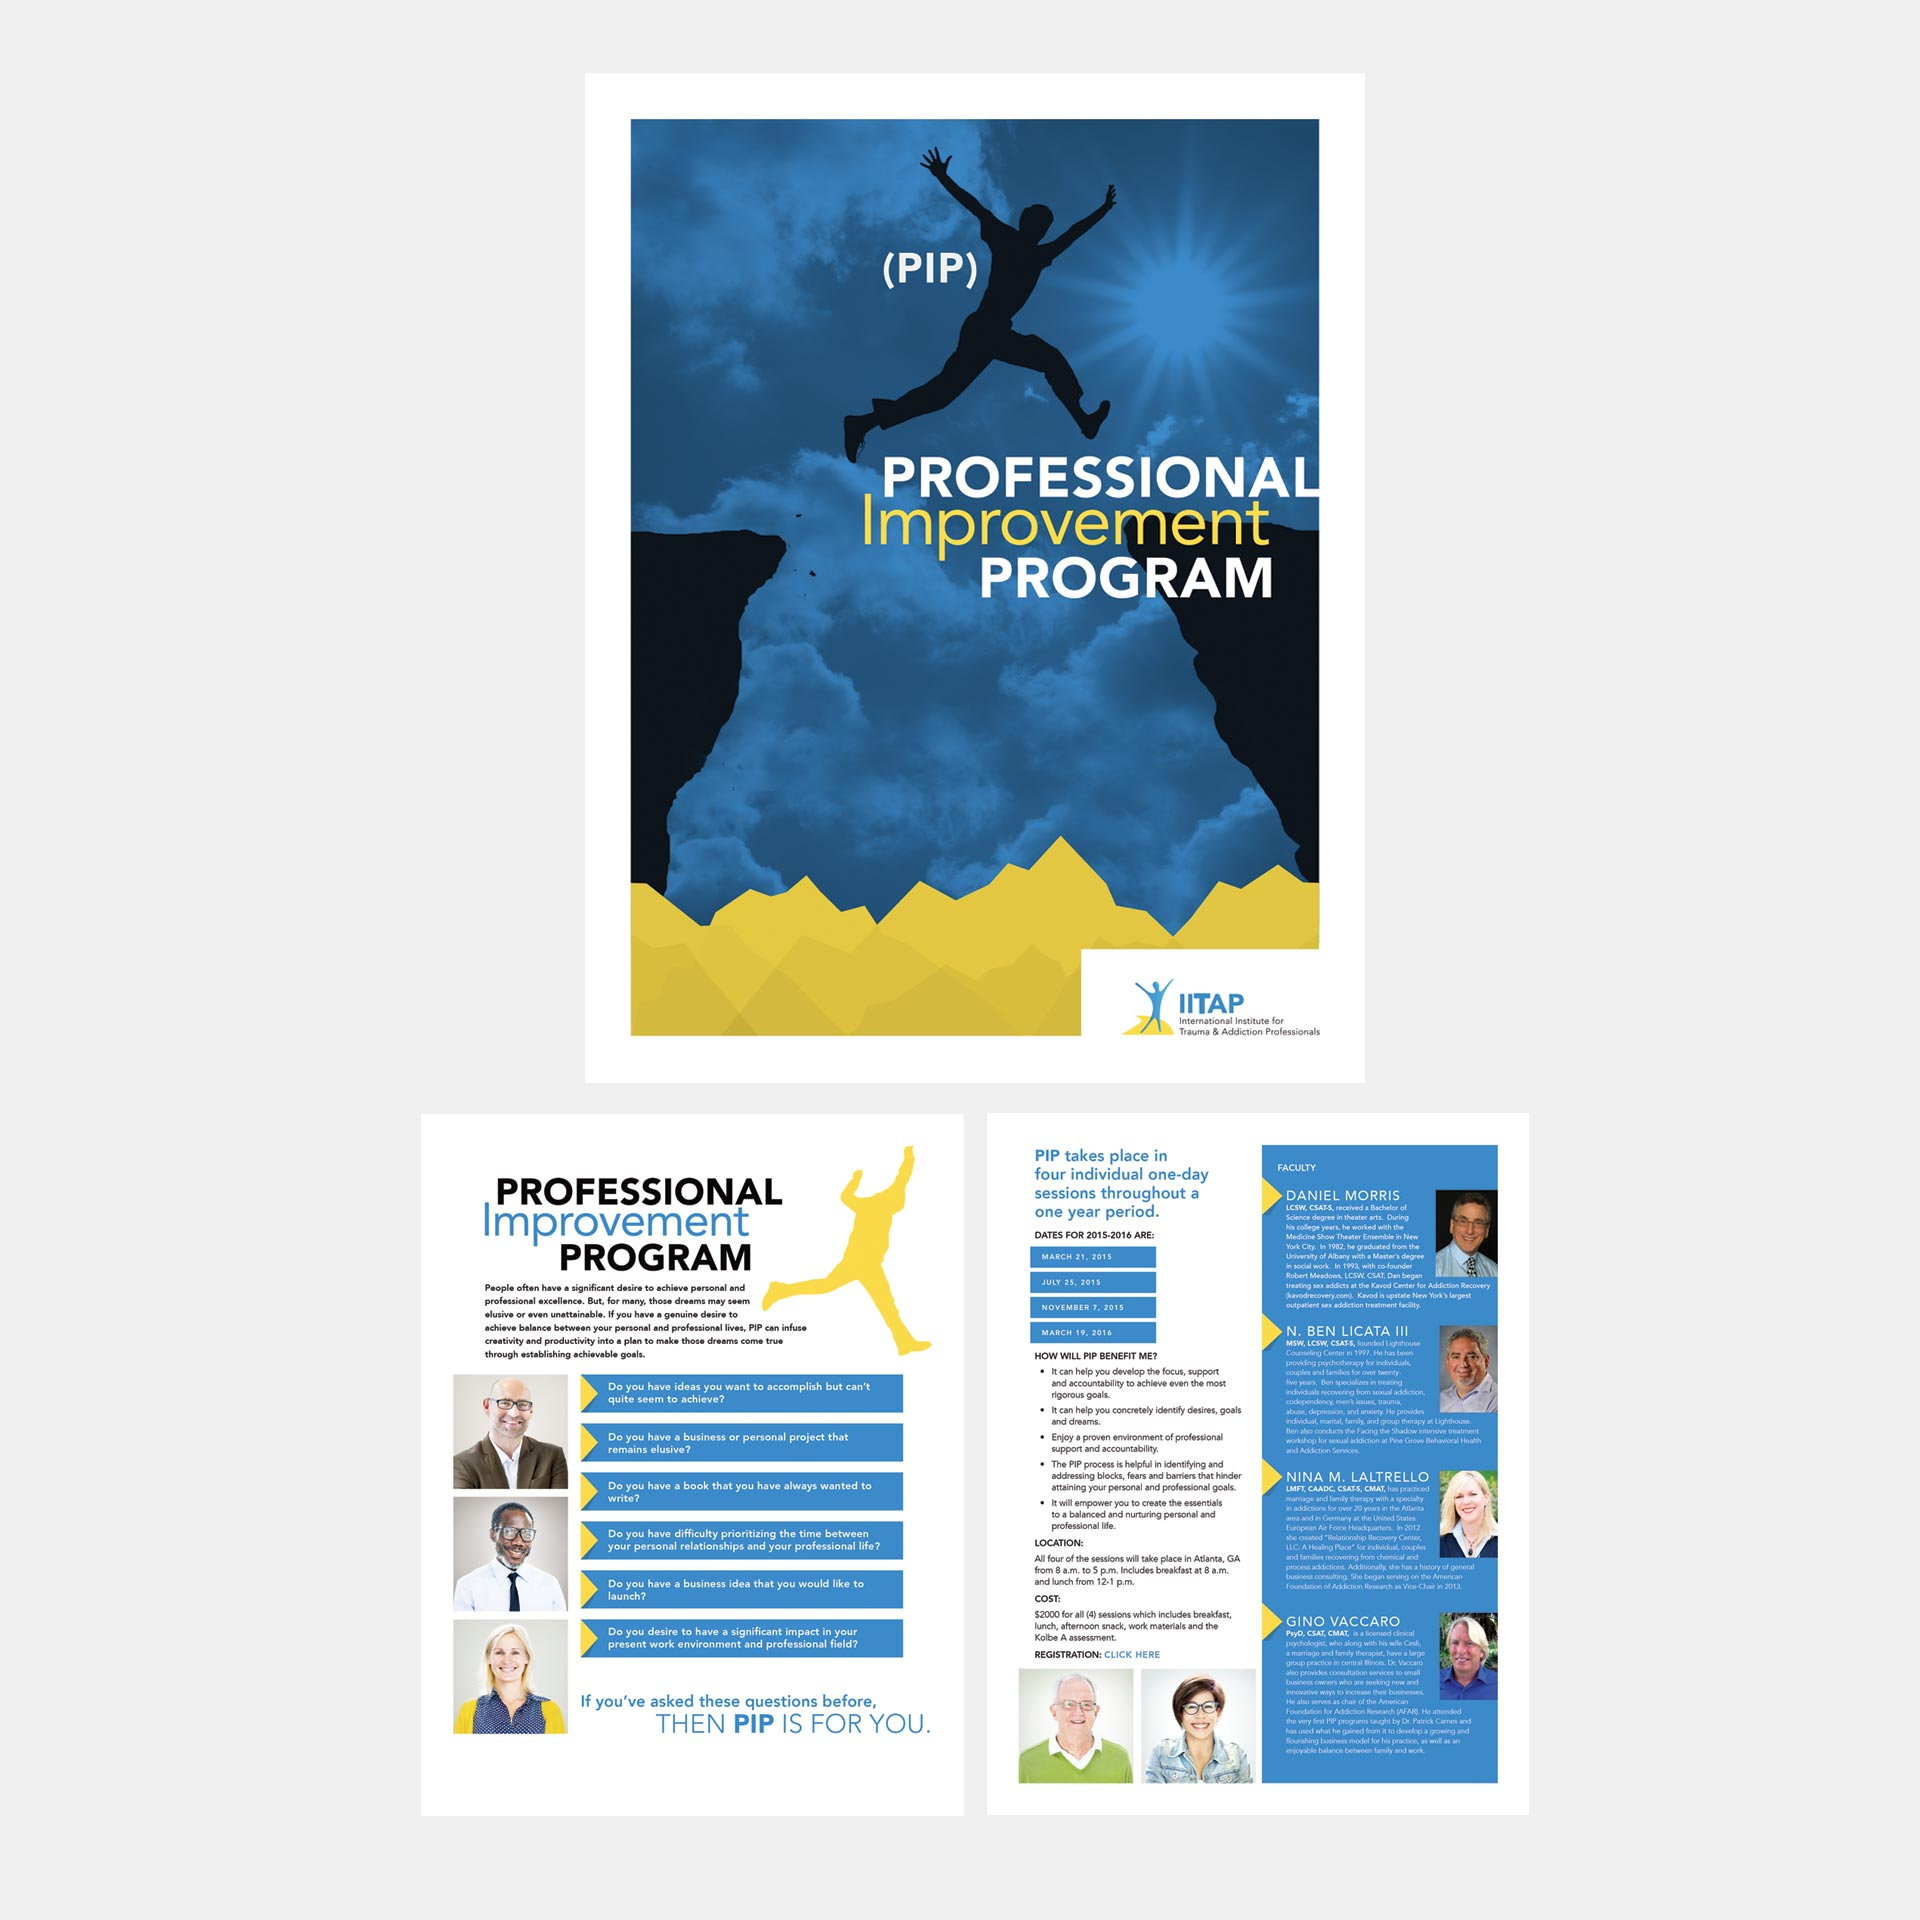 Medical Professional Improvement Program Brochure image